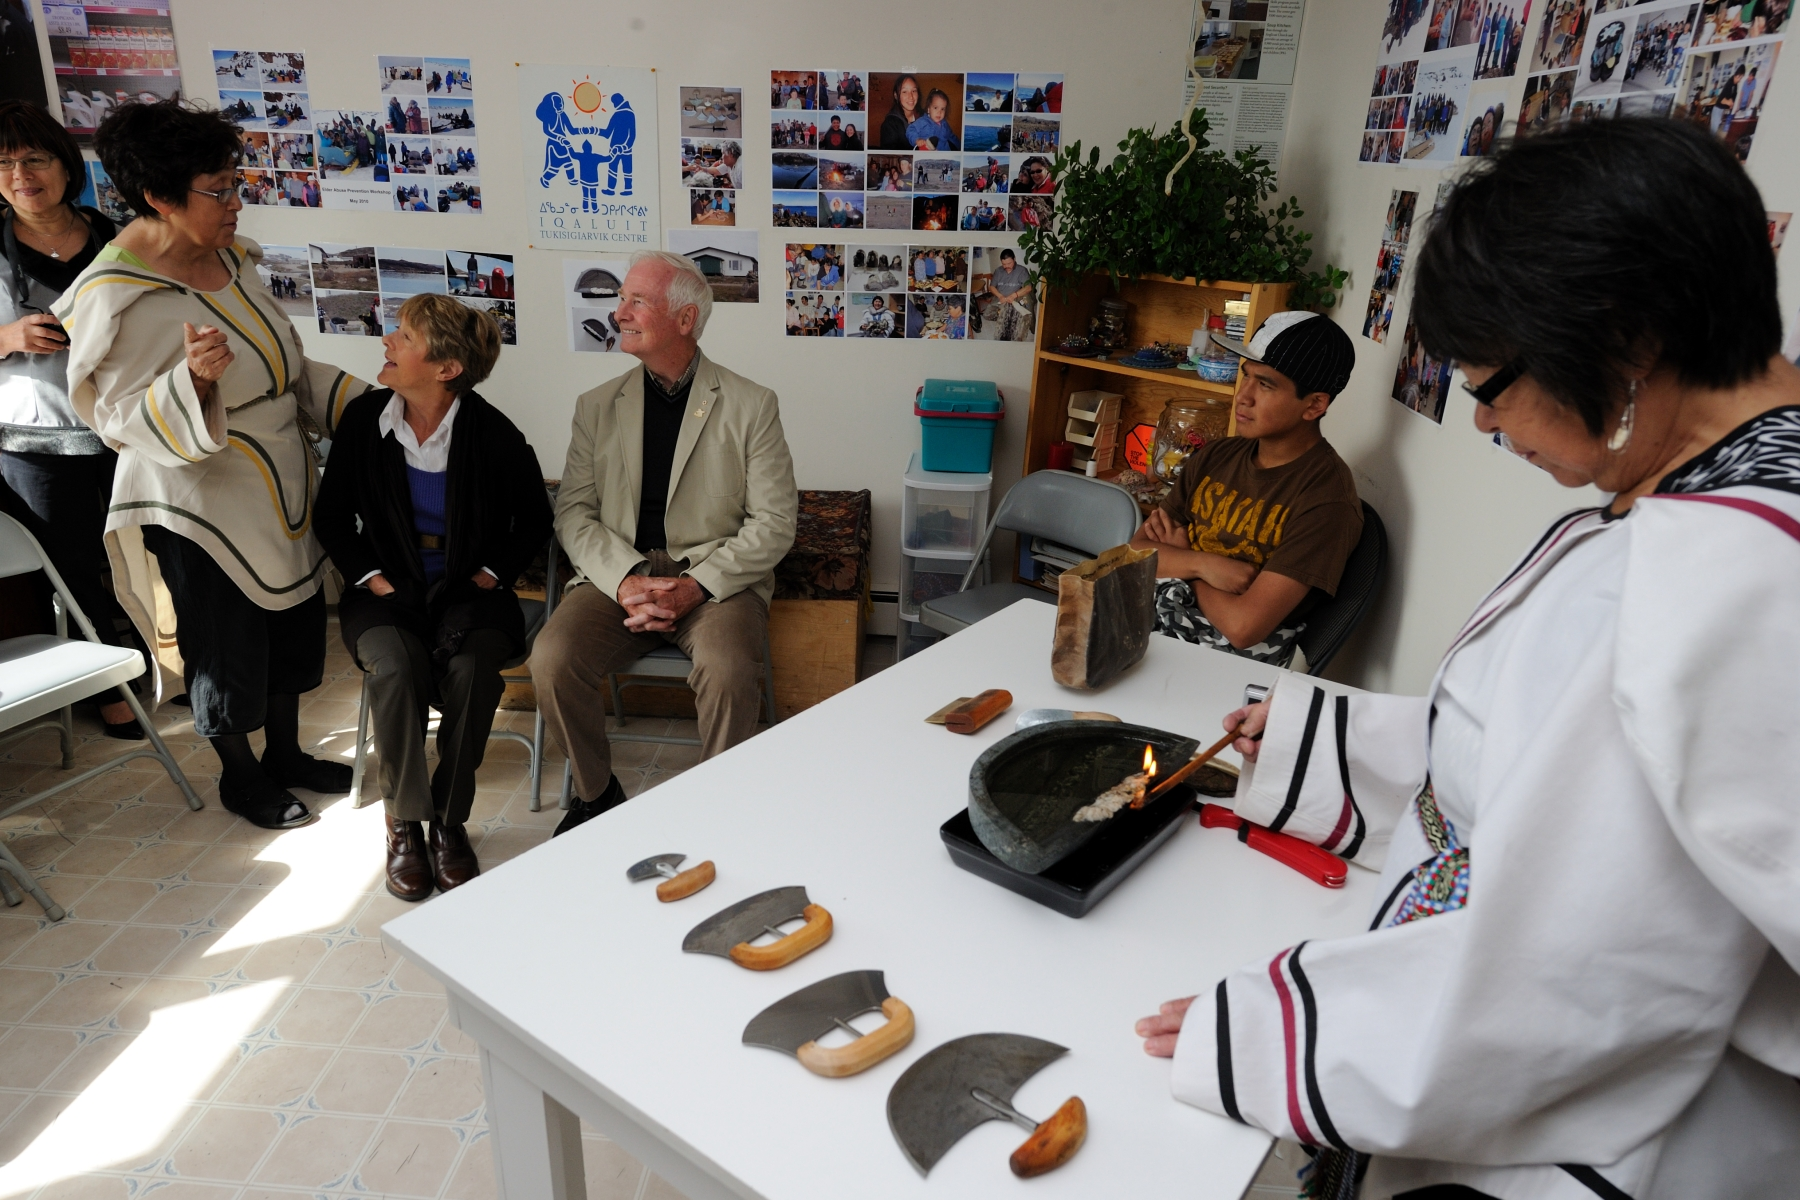 Their Excellencies were given a tour of the Tukisigiarvik Society facility and an overview of its services, followed by several demonstrations of cultural skills.